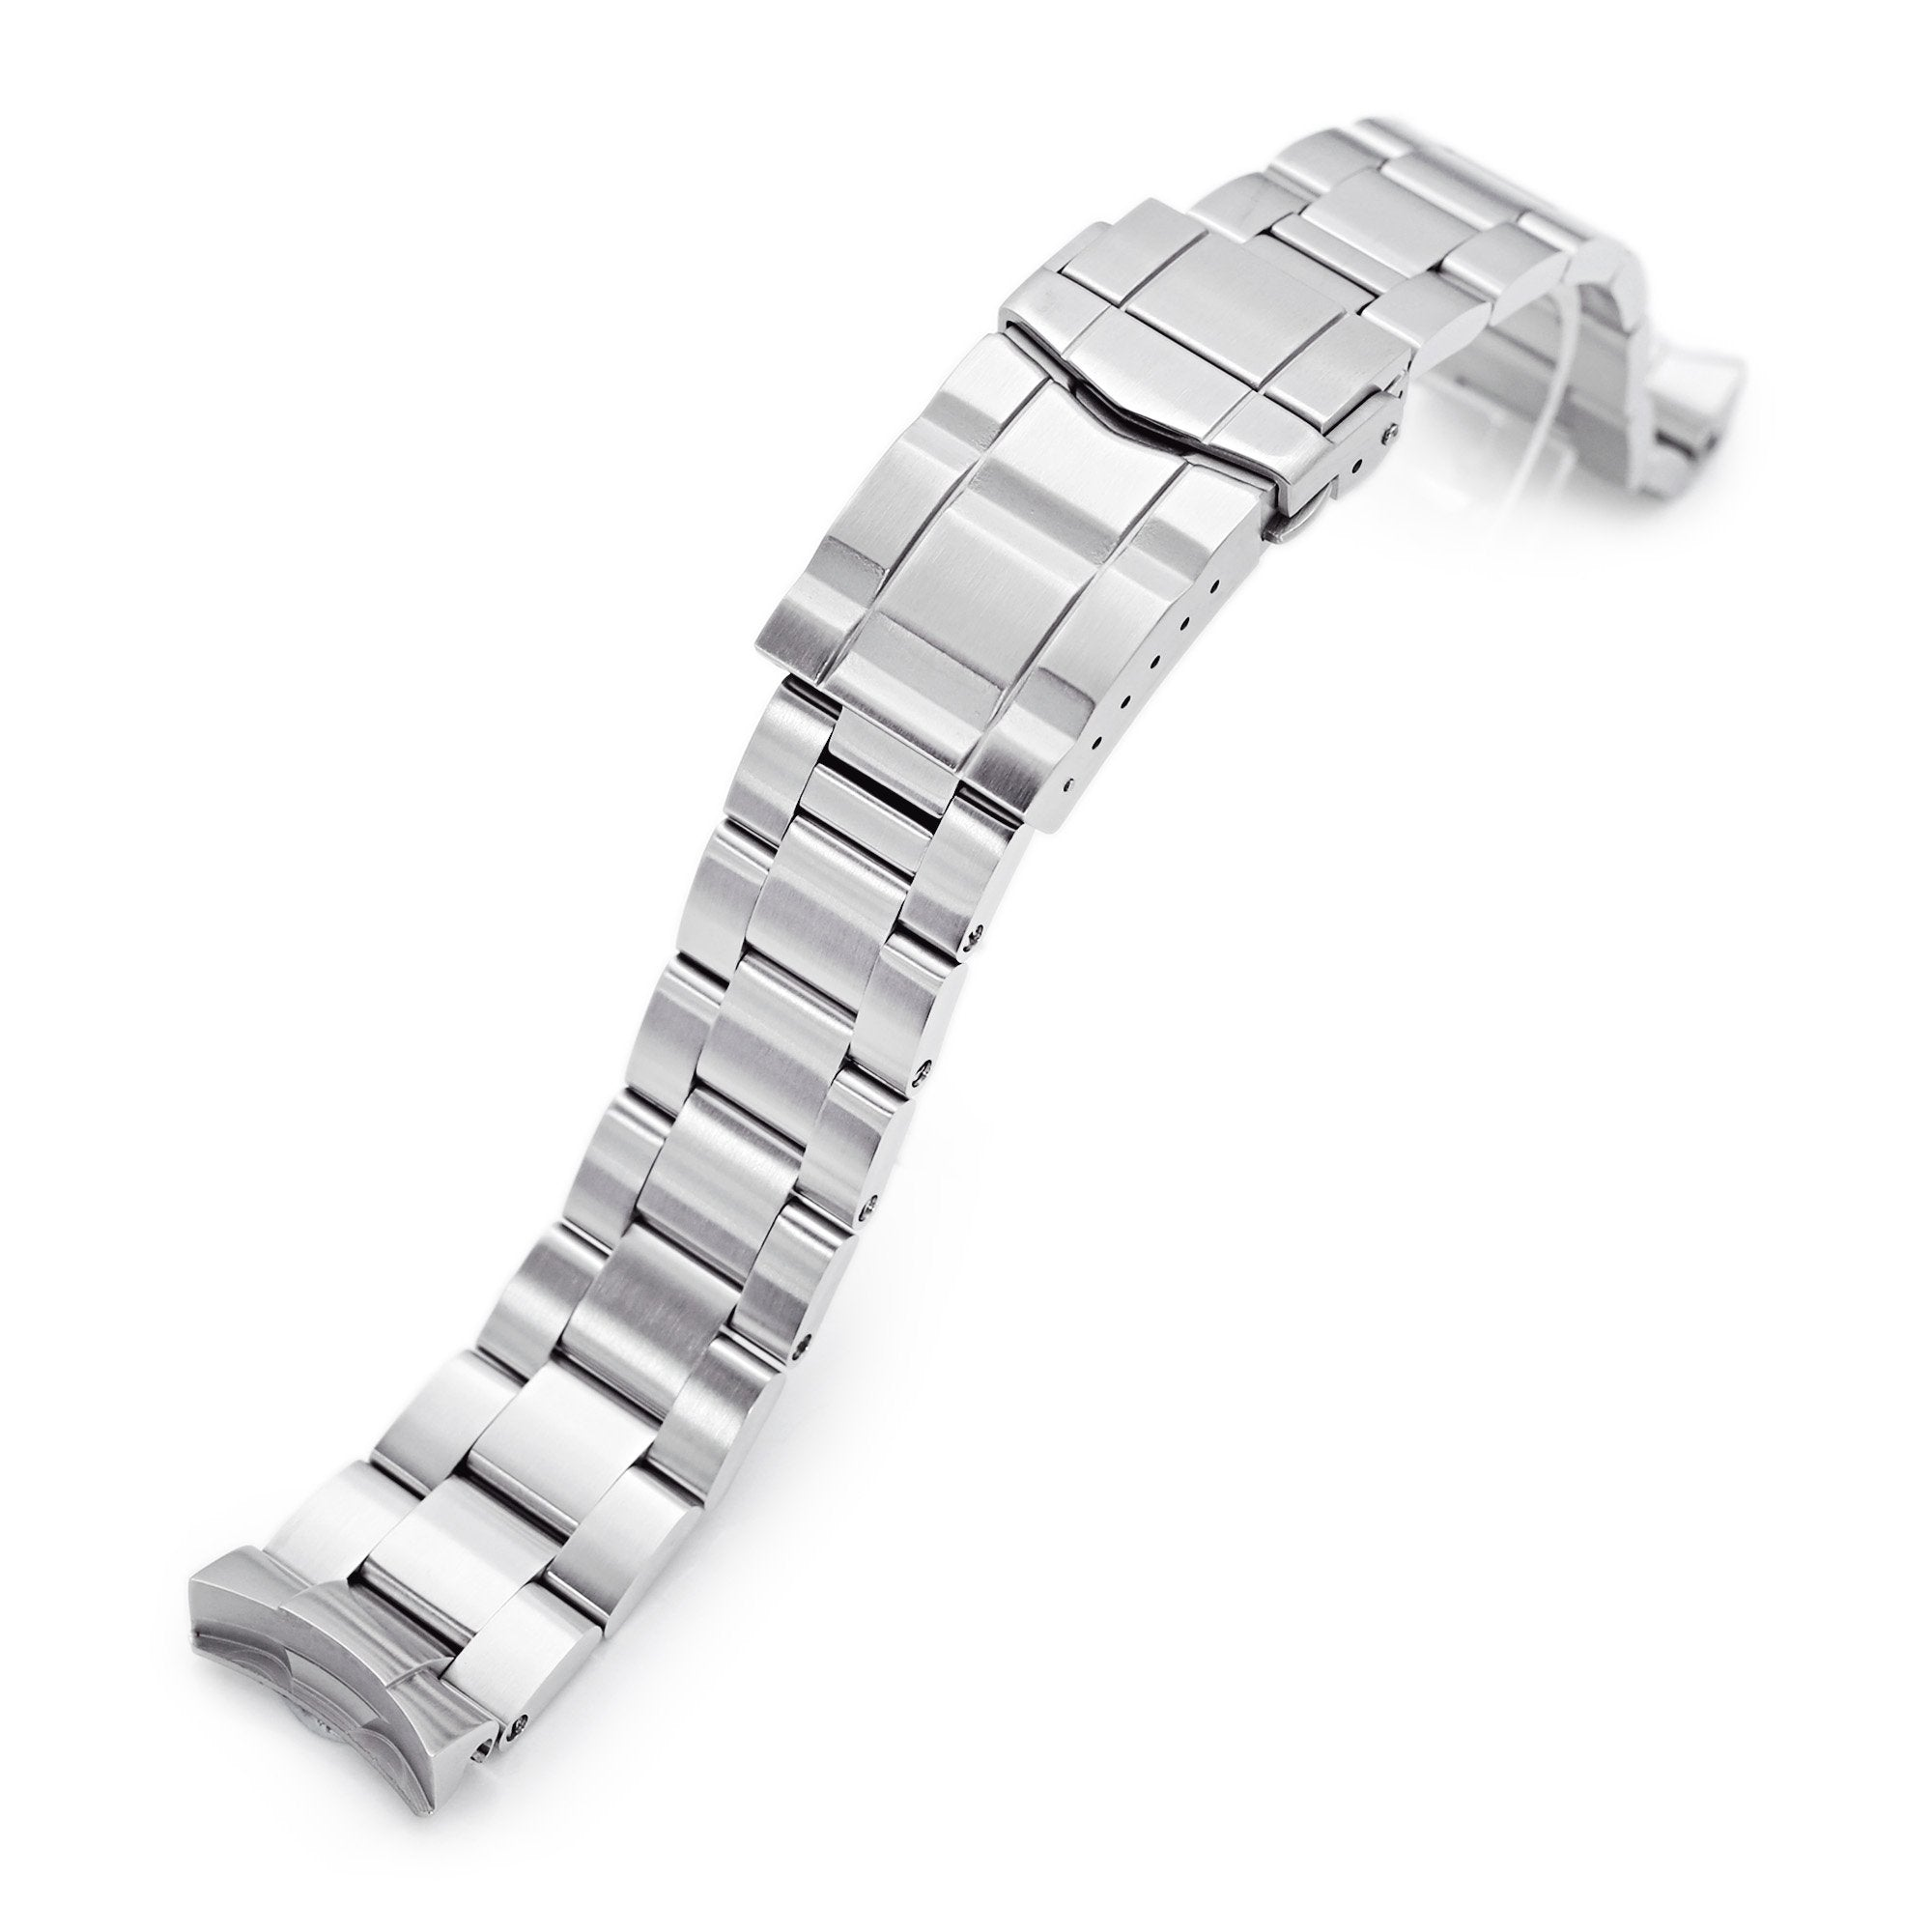 20mm Super-O Boyer 316L Stainless Steel Watch Band for New Seiko 5 40mm, Brushed SUB Clasp Strapcode Watch Bands